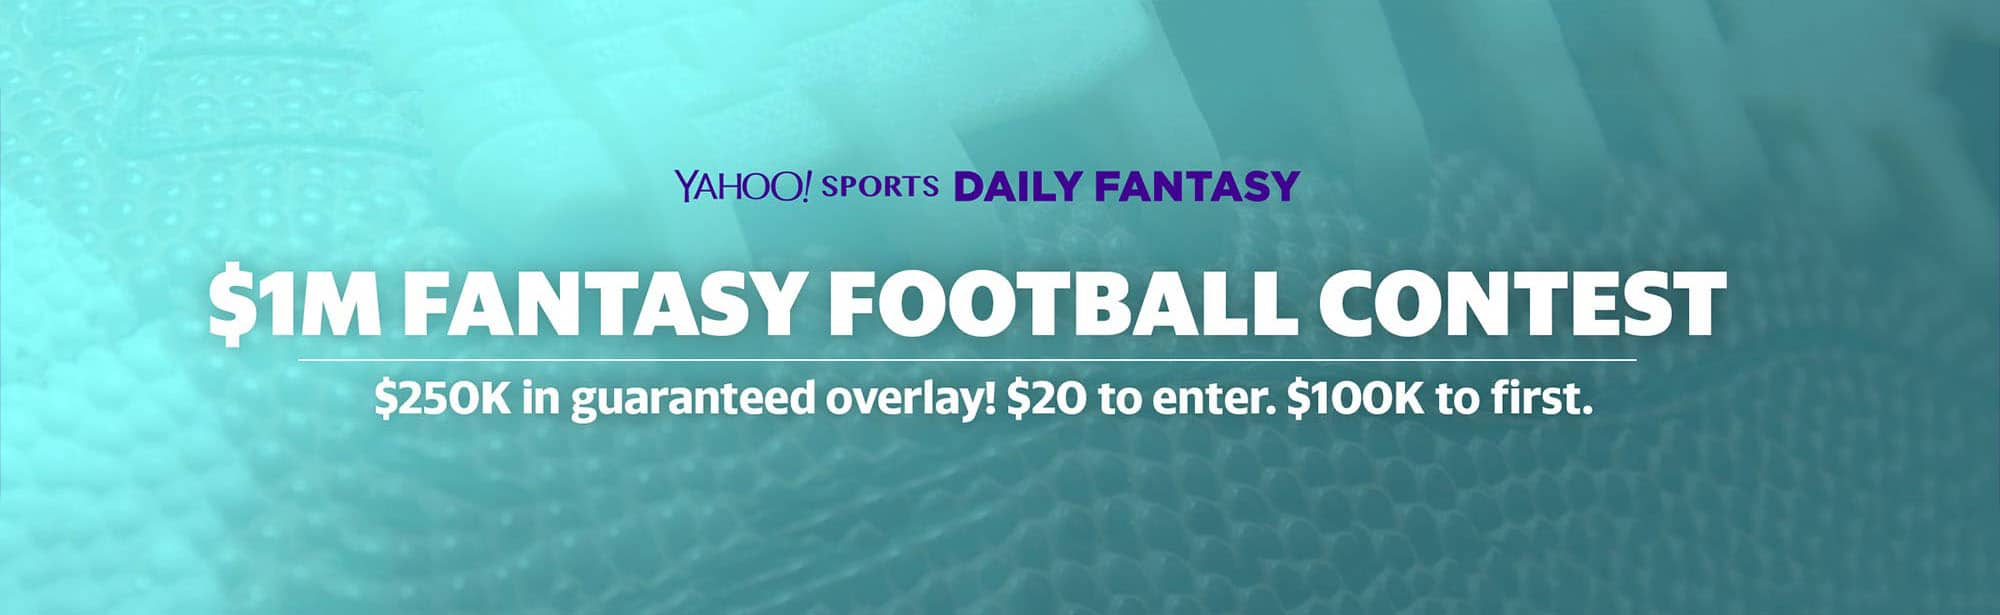 yahoo daily fantasy nfl promotions for 2021